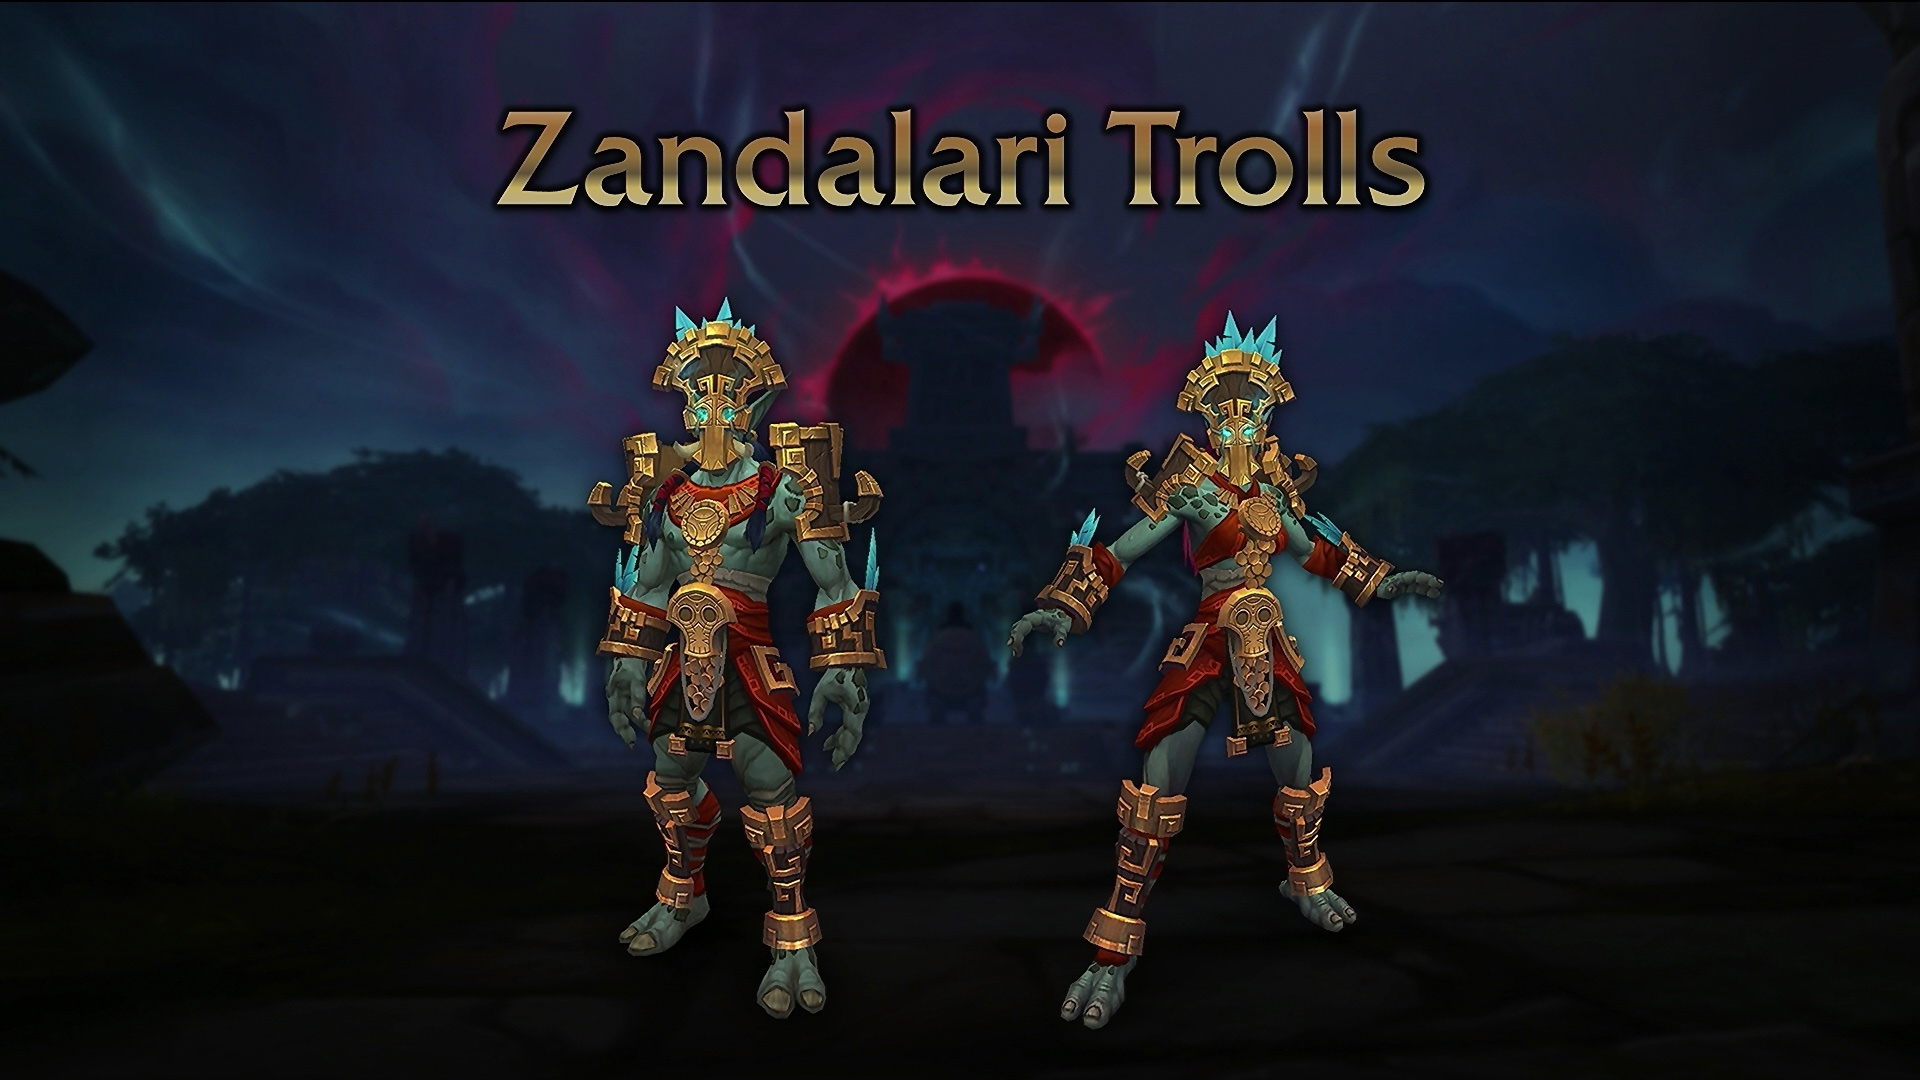 Trolls Zandalari au patch 8.1.5